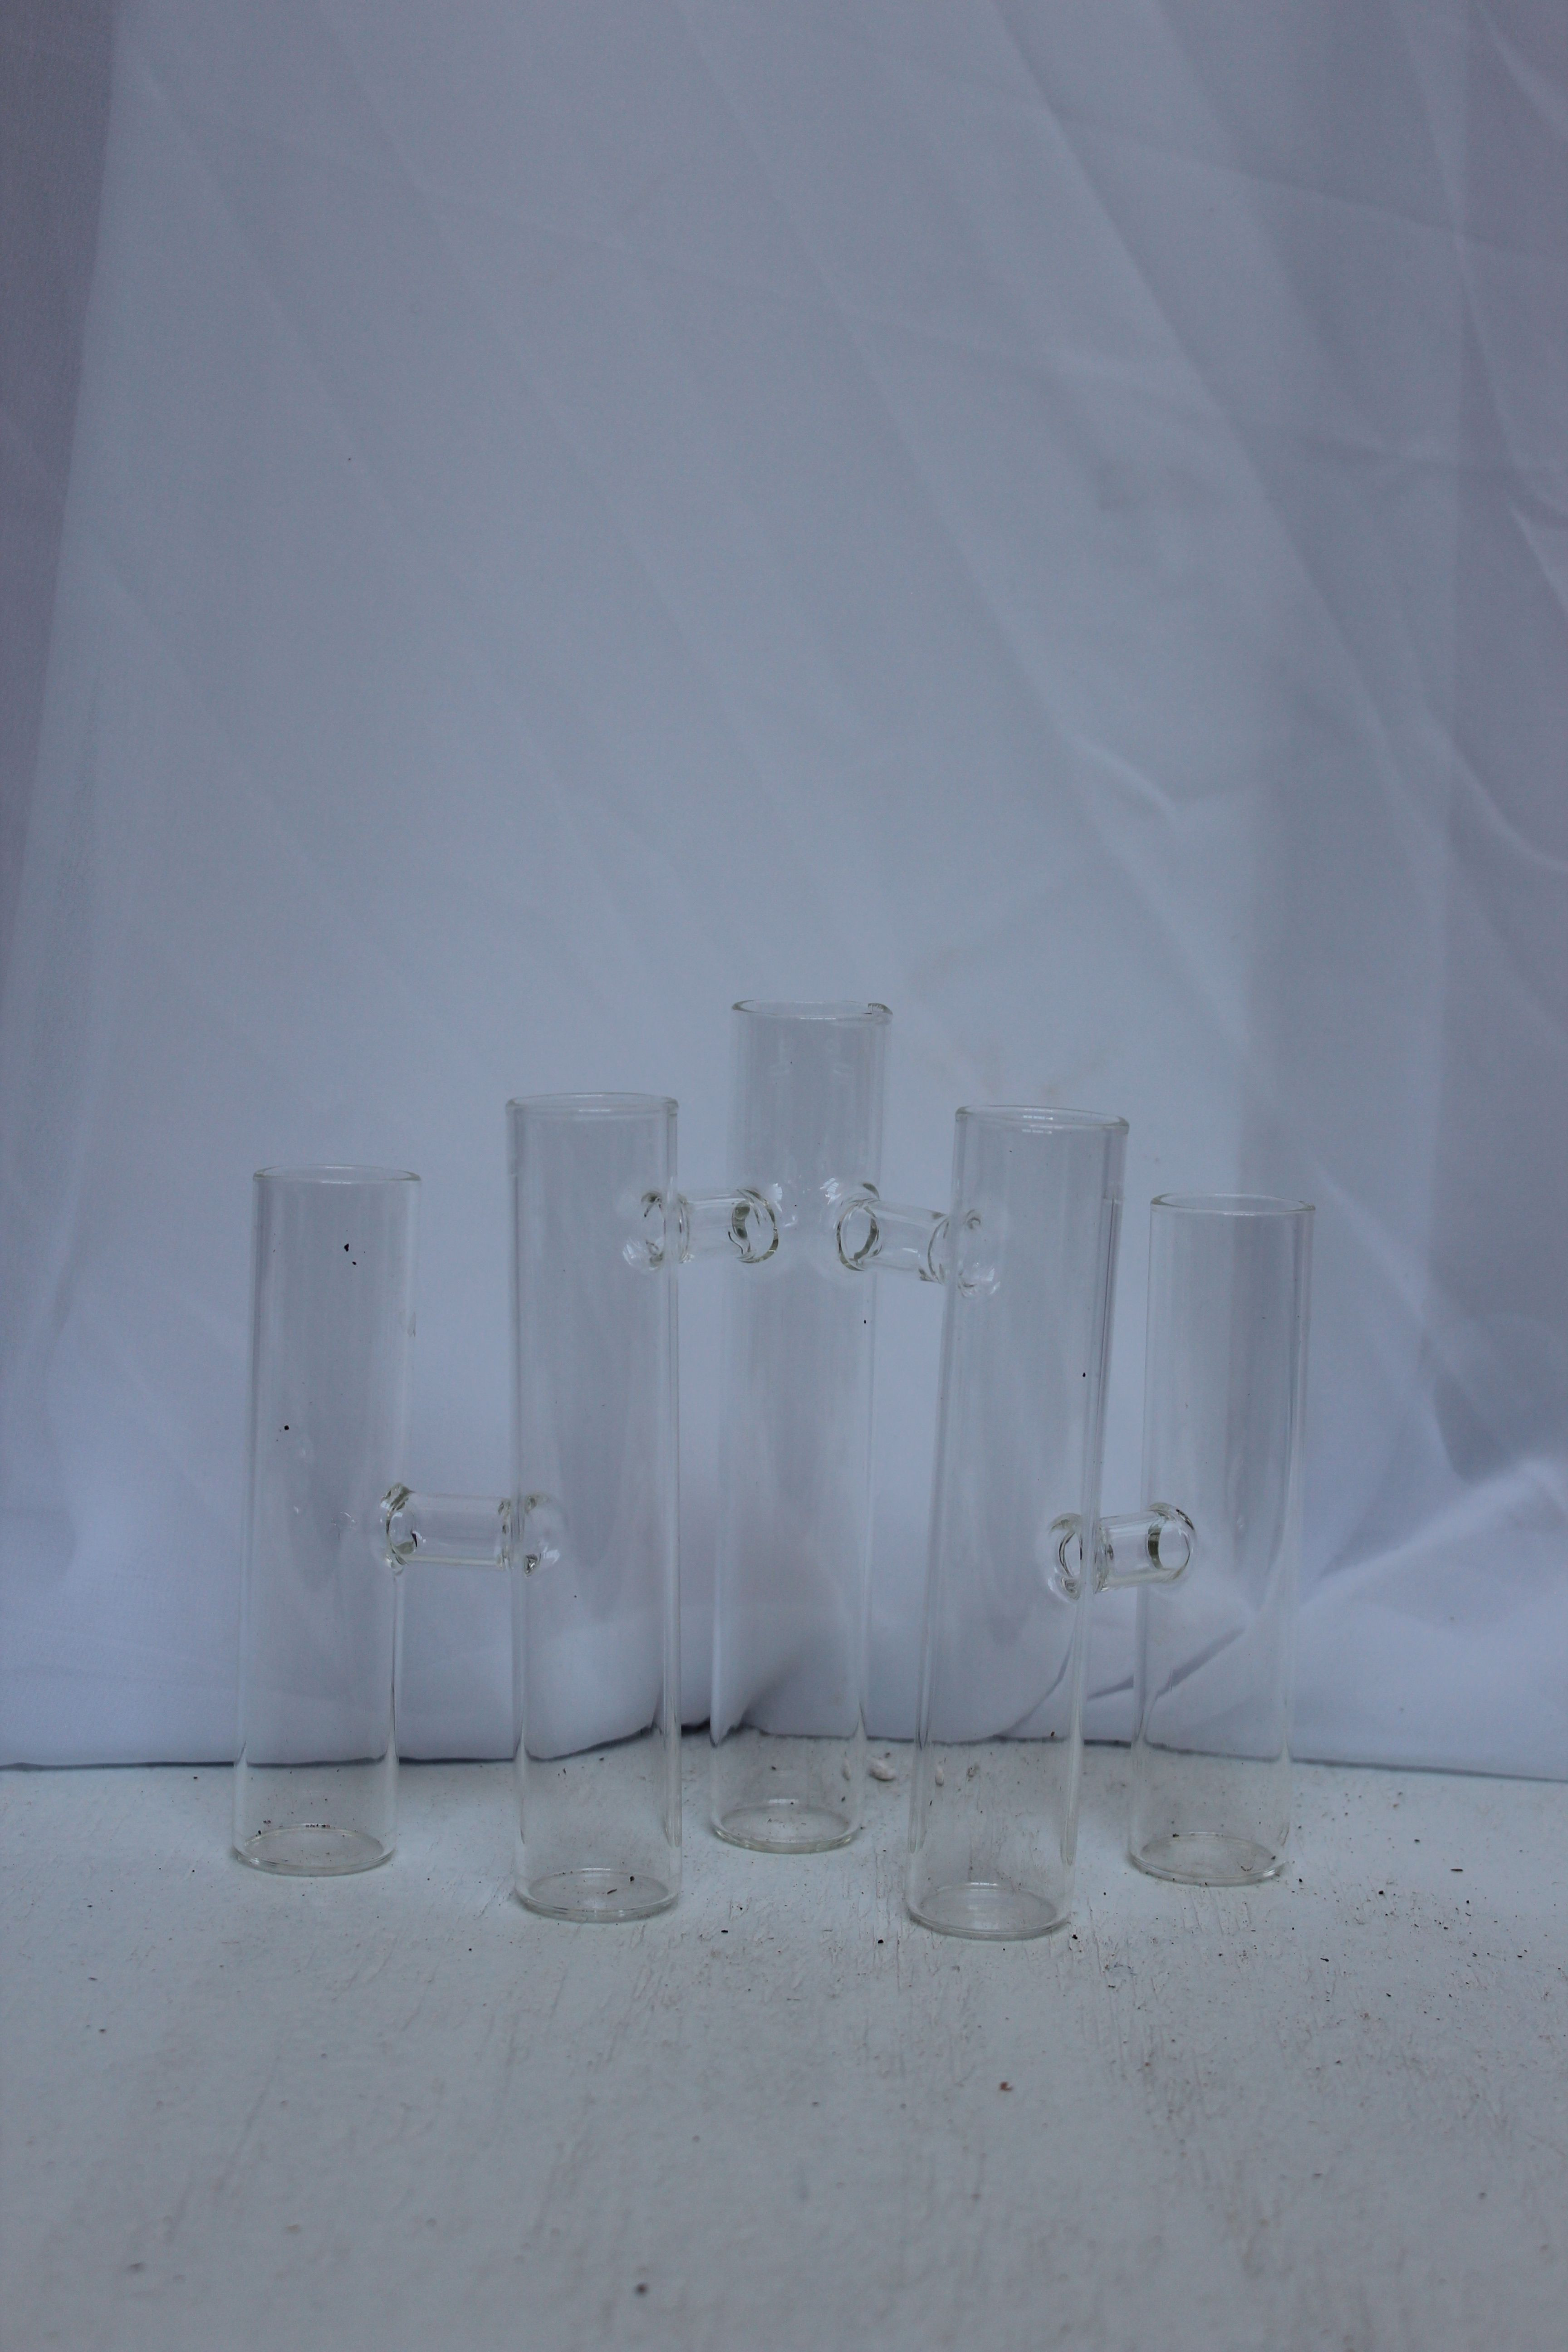 Black Glass Cube Vase Of 5 Connected Test Tube Style Bud Vases Showroom Pinterest Test with 5 Connected Test Tube Style Bud Vases